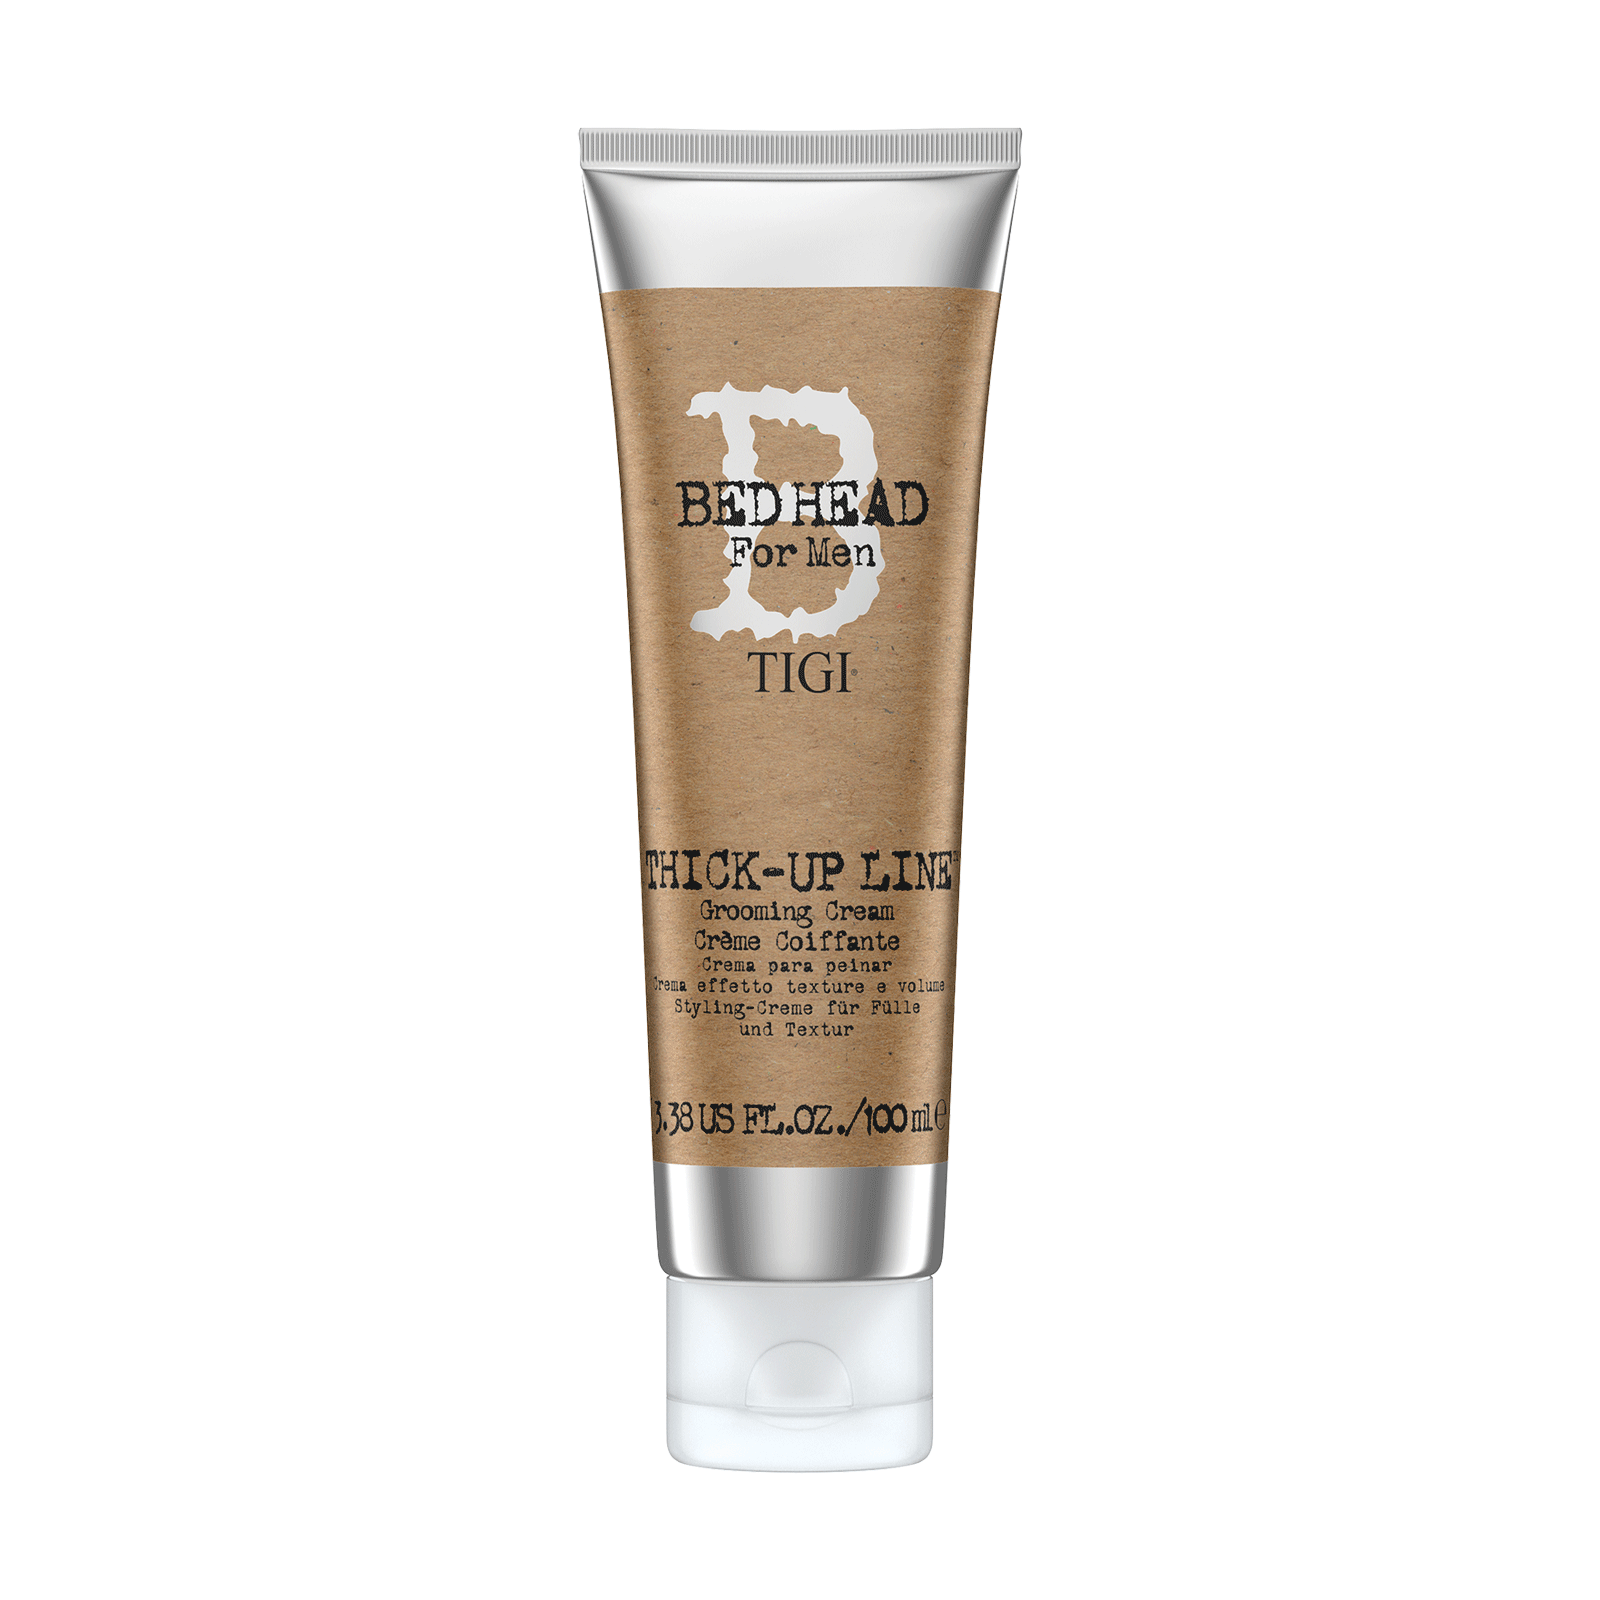 Thick Up Line Grooming Cream